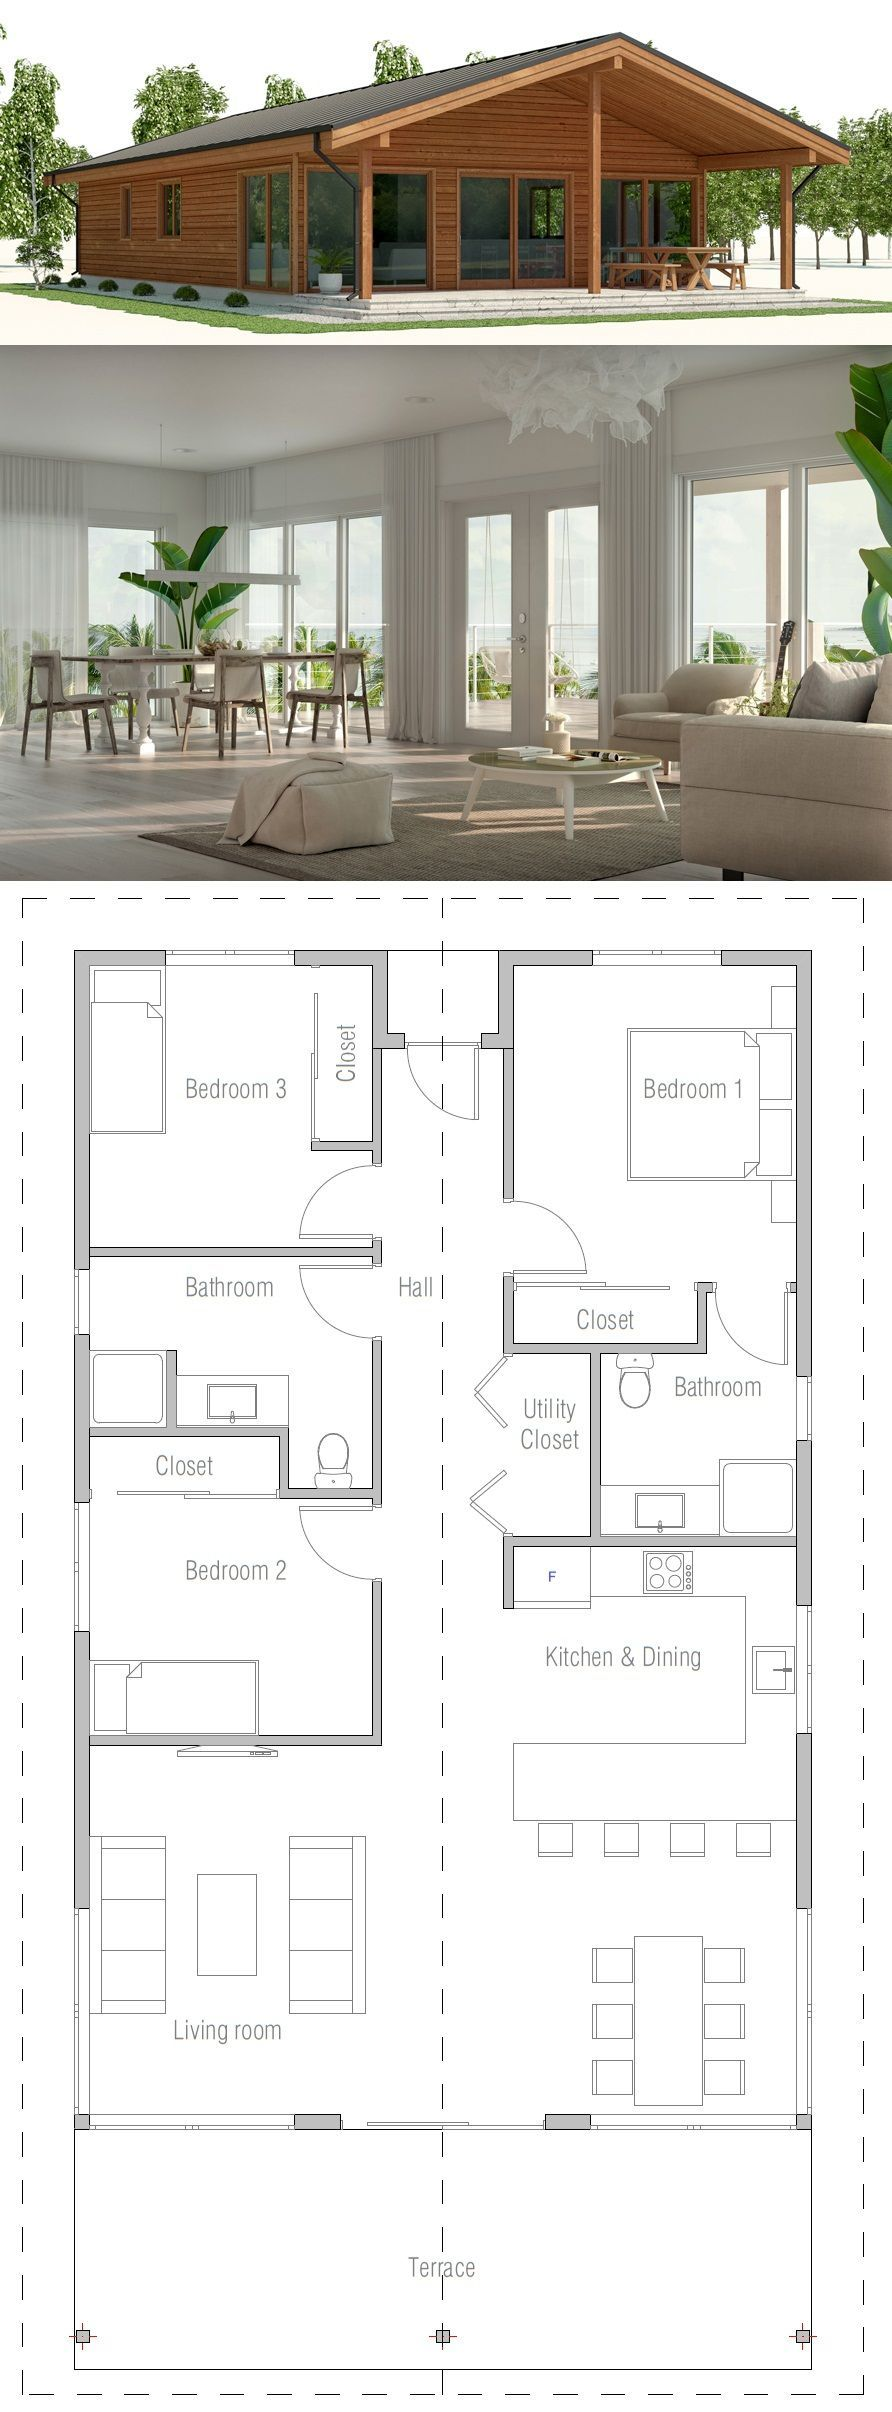 Affordable Home Plan 28 8 X 45 10 New House Plans House Design Floor Plans